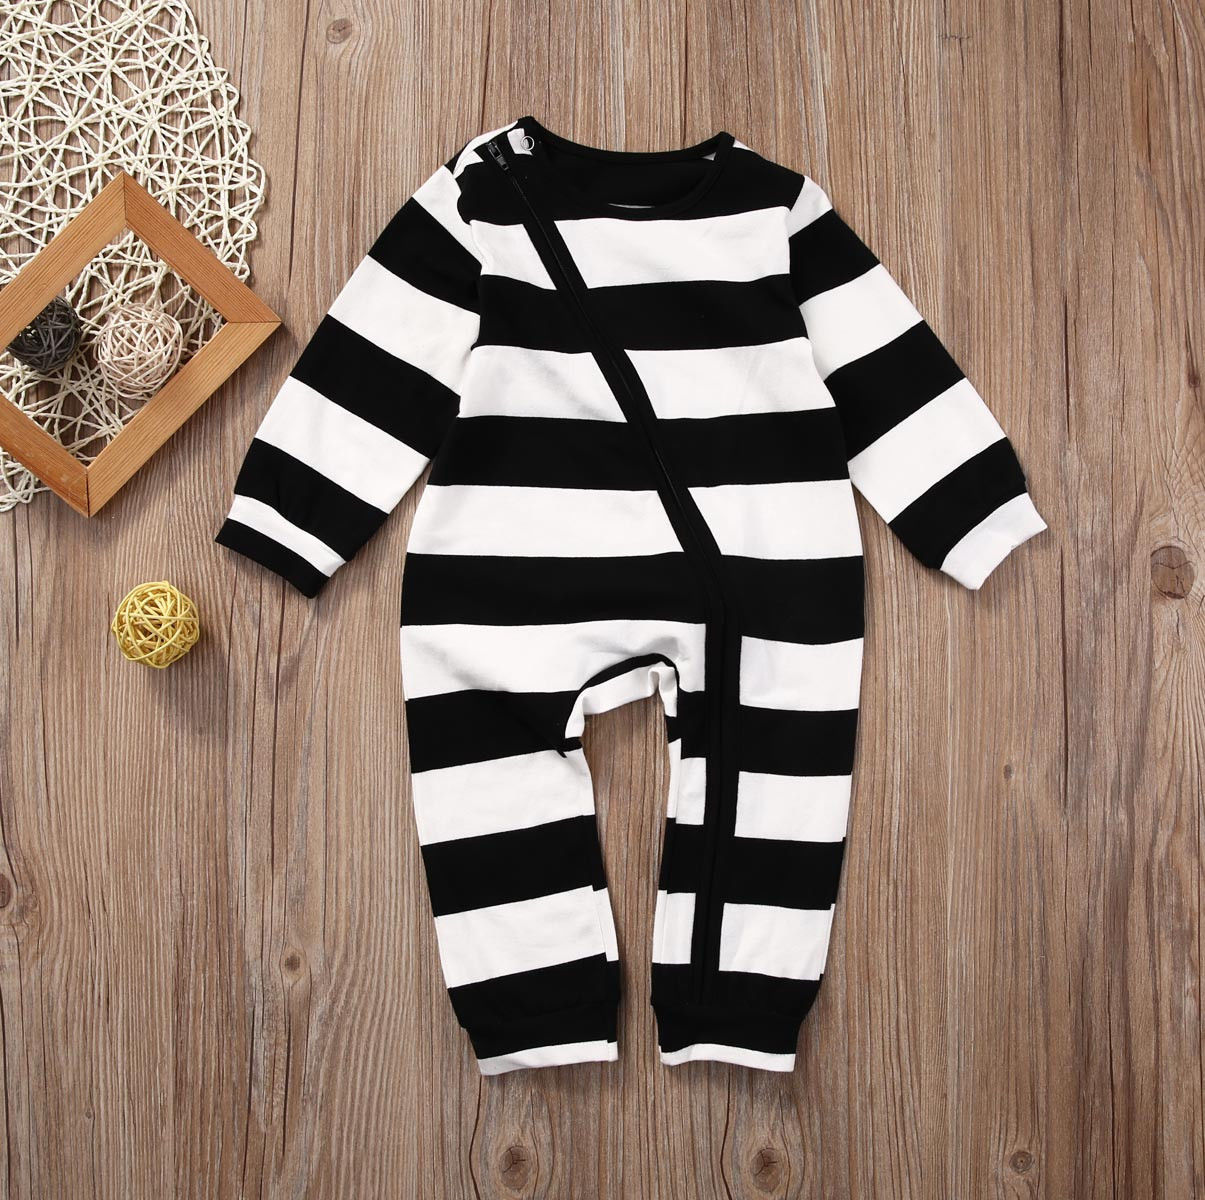 Spring Autumn Newborn Toddler Baby Boys Girls Clothes Long Sleeve Cotton Zipper Cute Striped Bodysuit Playsuit Baby Clothes baby rompers 2016 spring autumn style overalls star printing cotton newborn baby boys girls clothes long sleeve hooded outfits